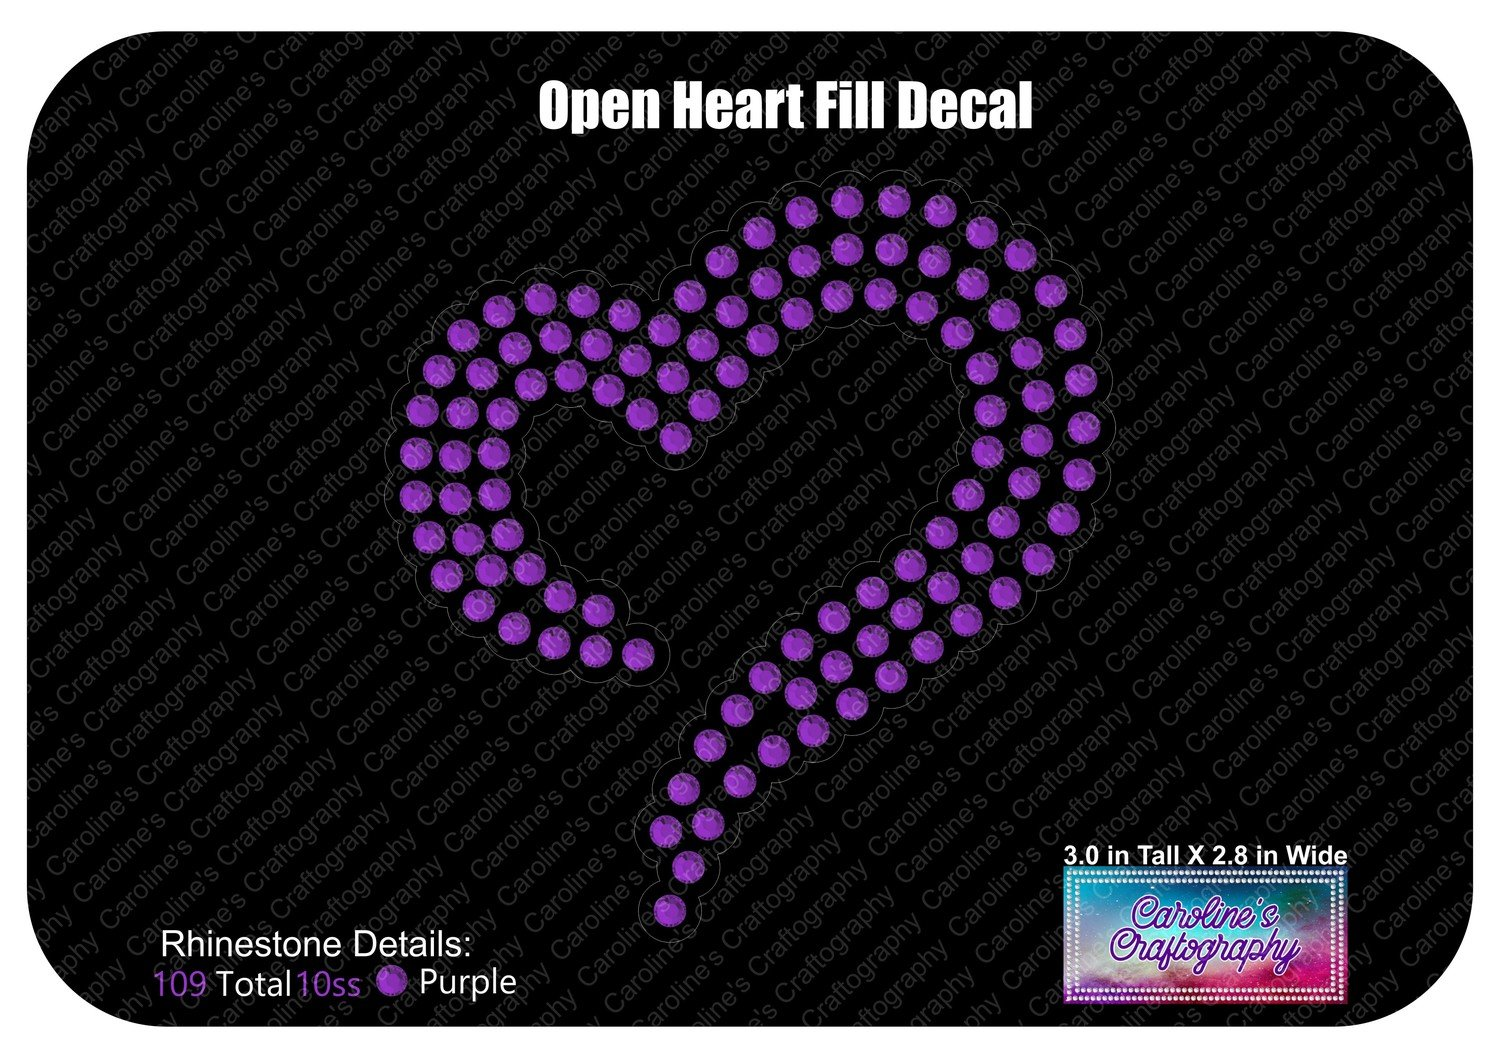 Open Heart Fill Decal Stone